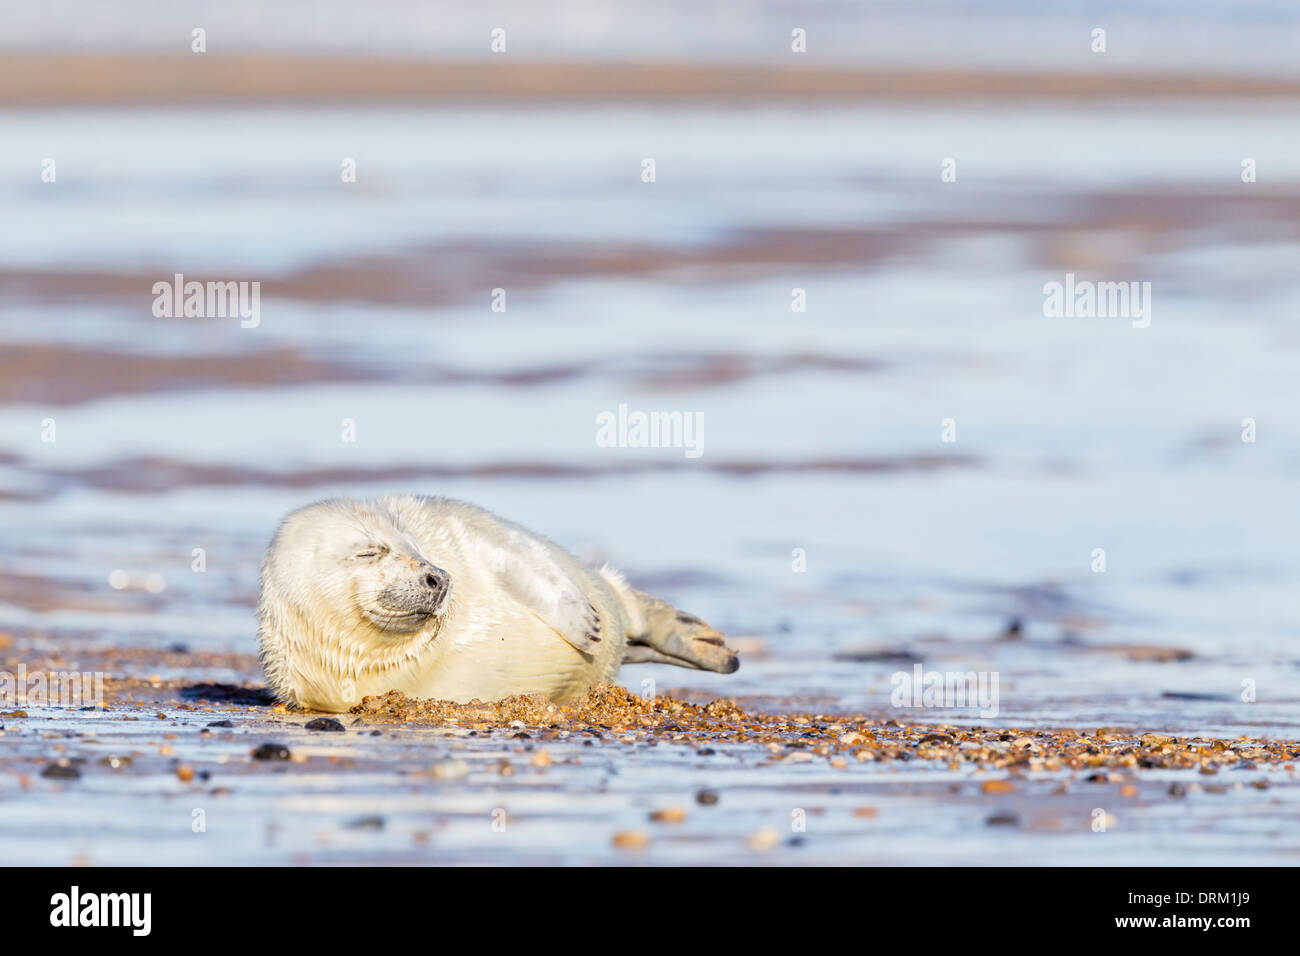 A white coated Grey seal pup sleeps on the beach, North Sea coast, Norfolk, England - Stock Image